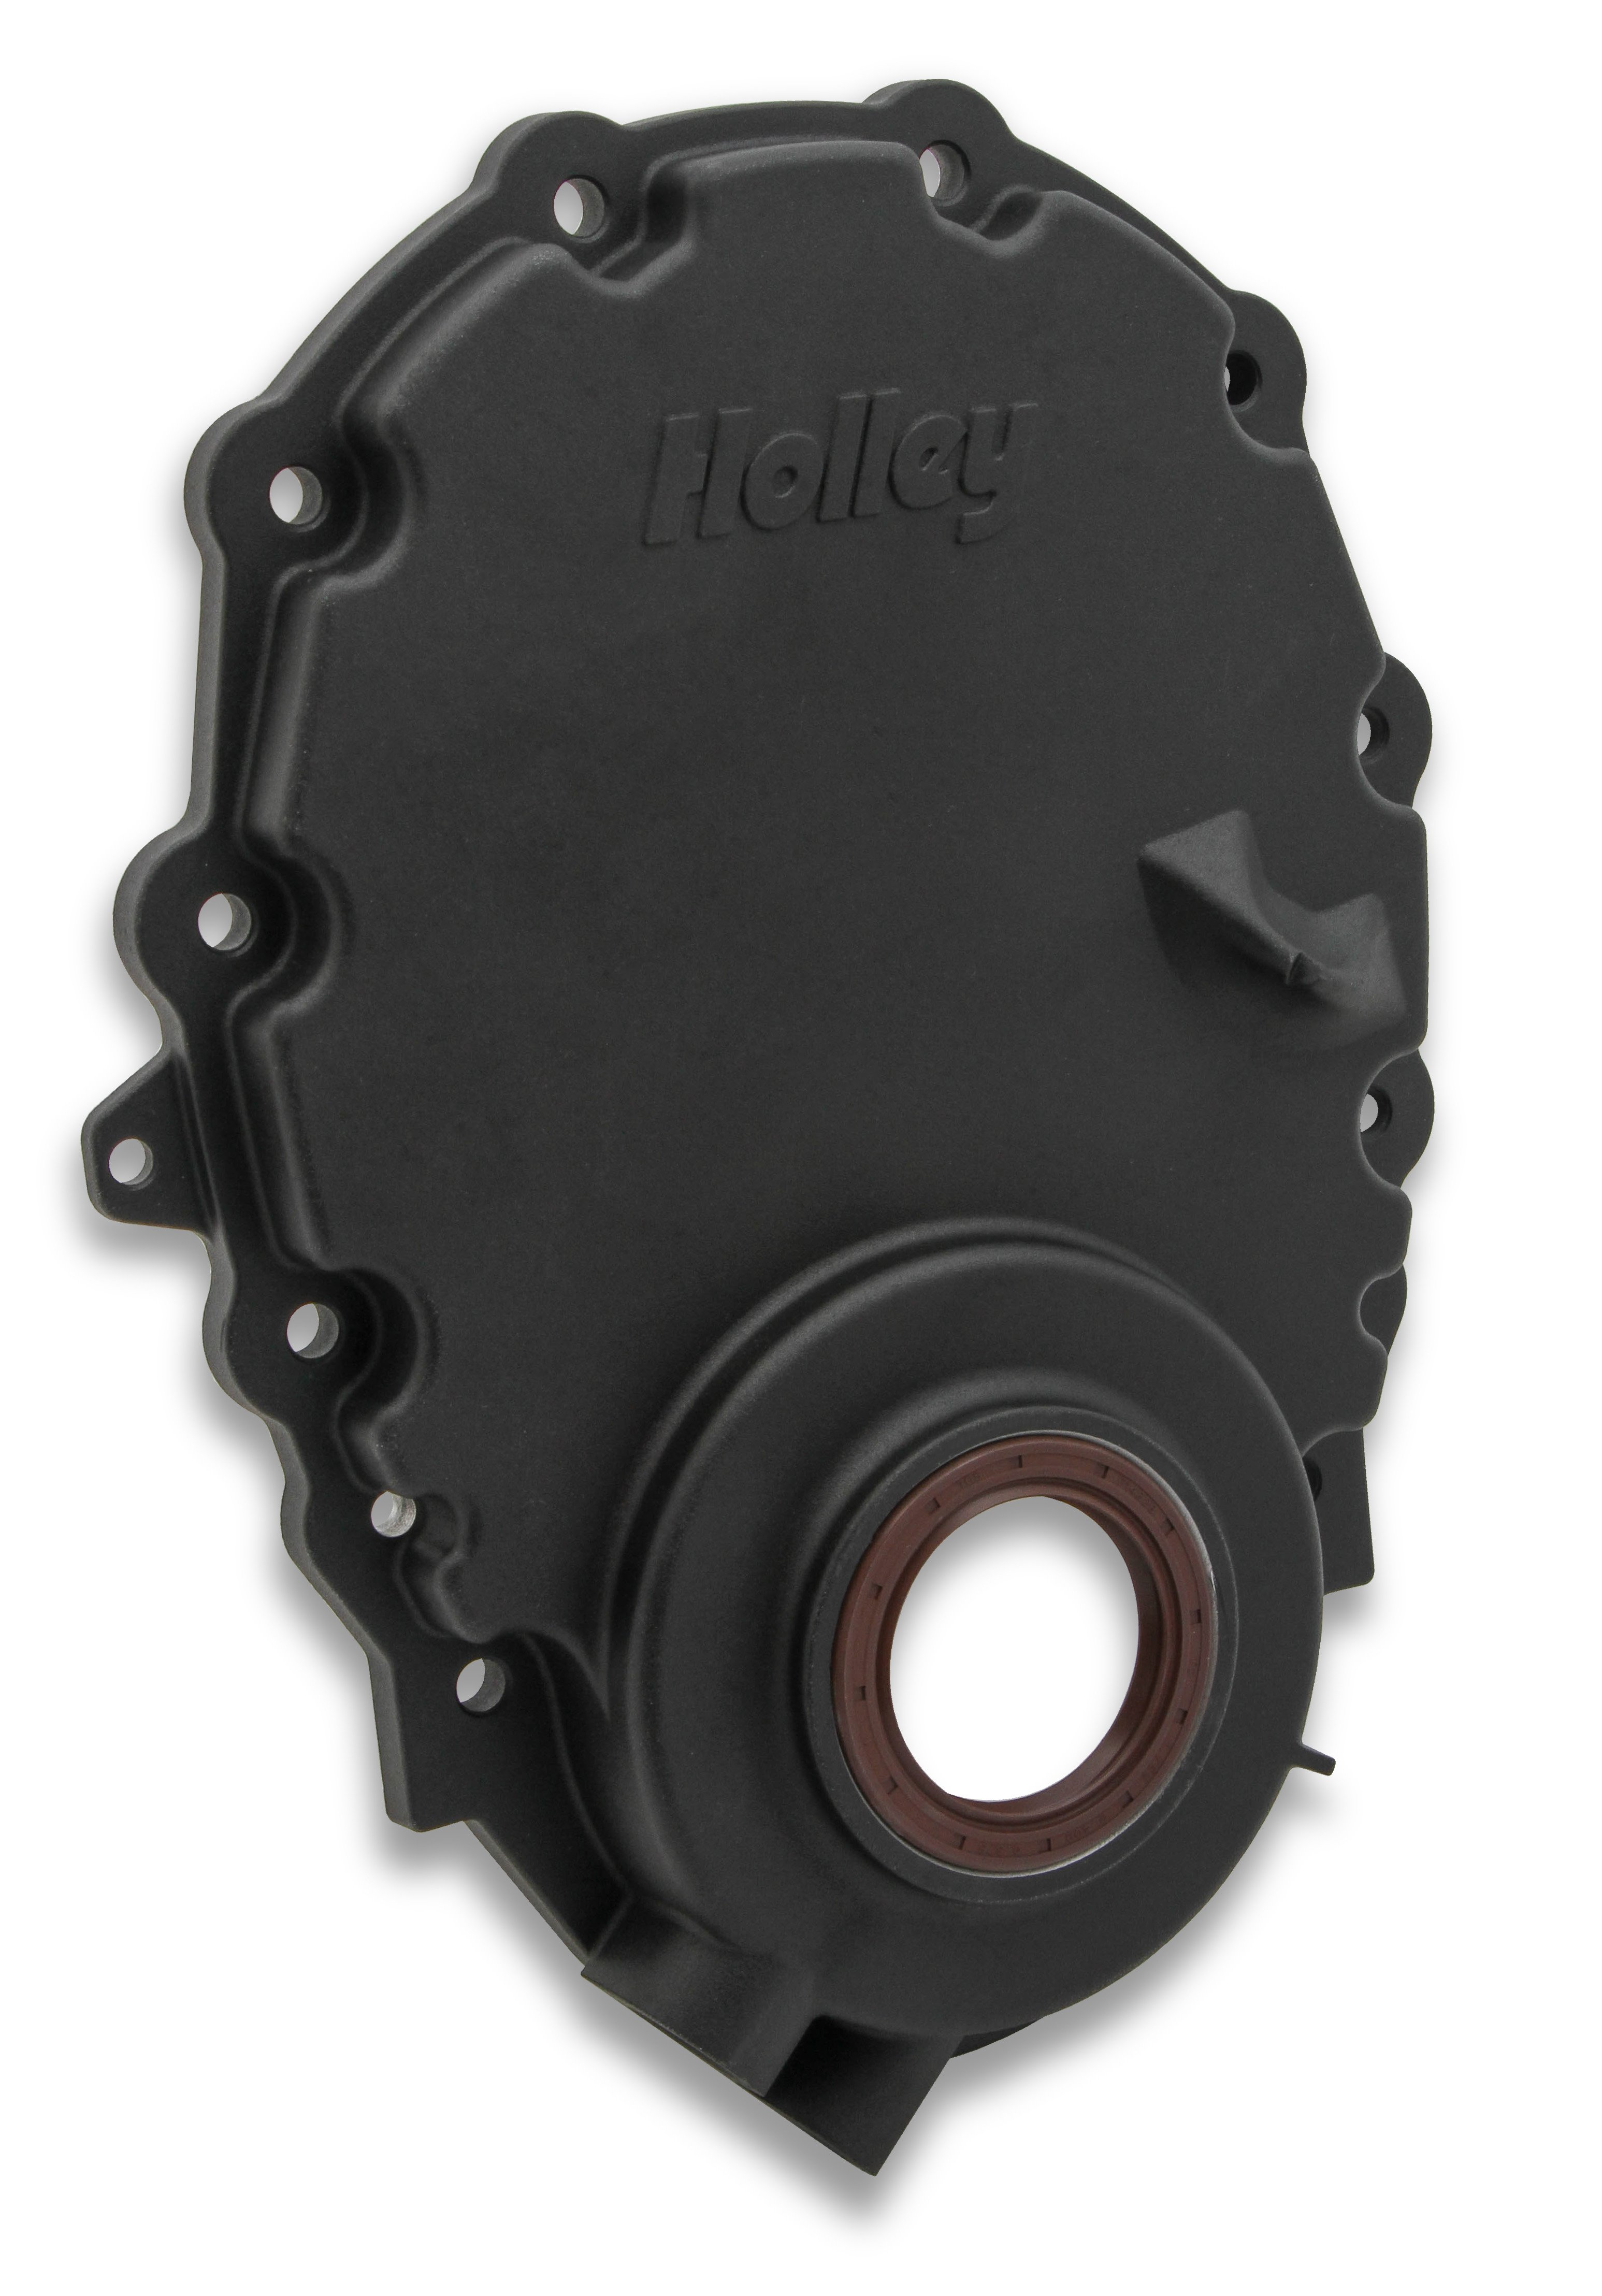 Holley 21 151 Cast Aluminum Timing Chain Cover 5 3 Vortec Crate Engine With Wiring Harness Free Image